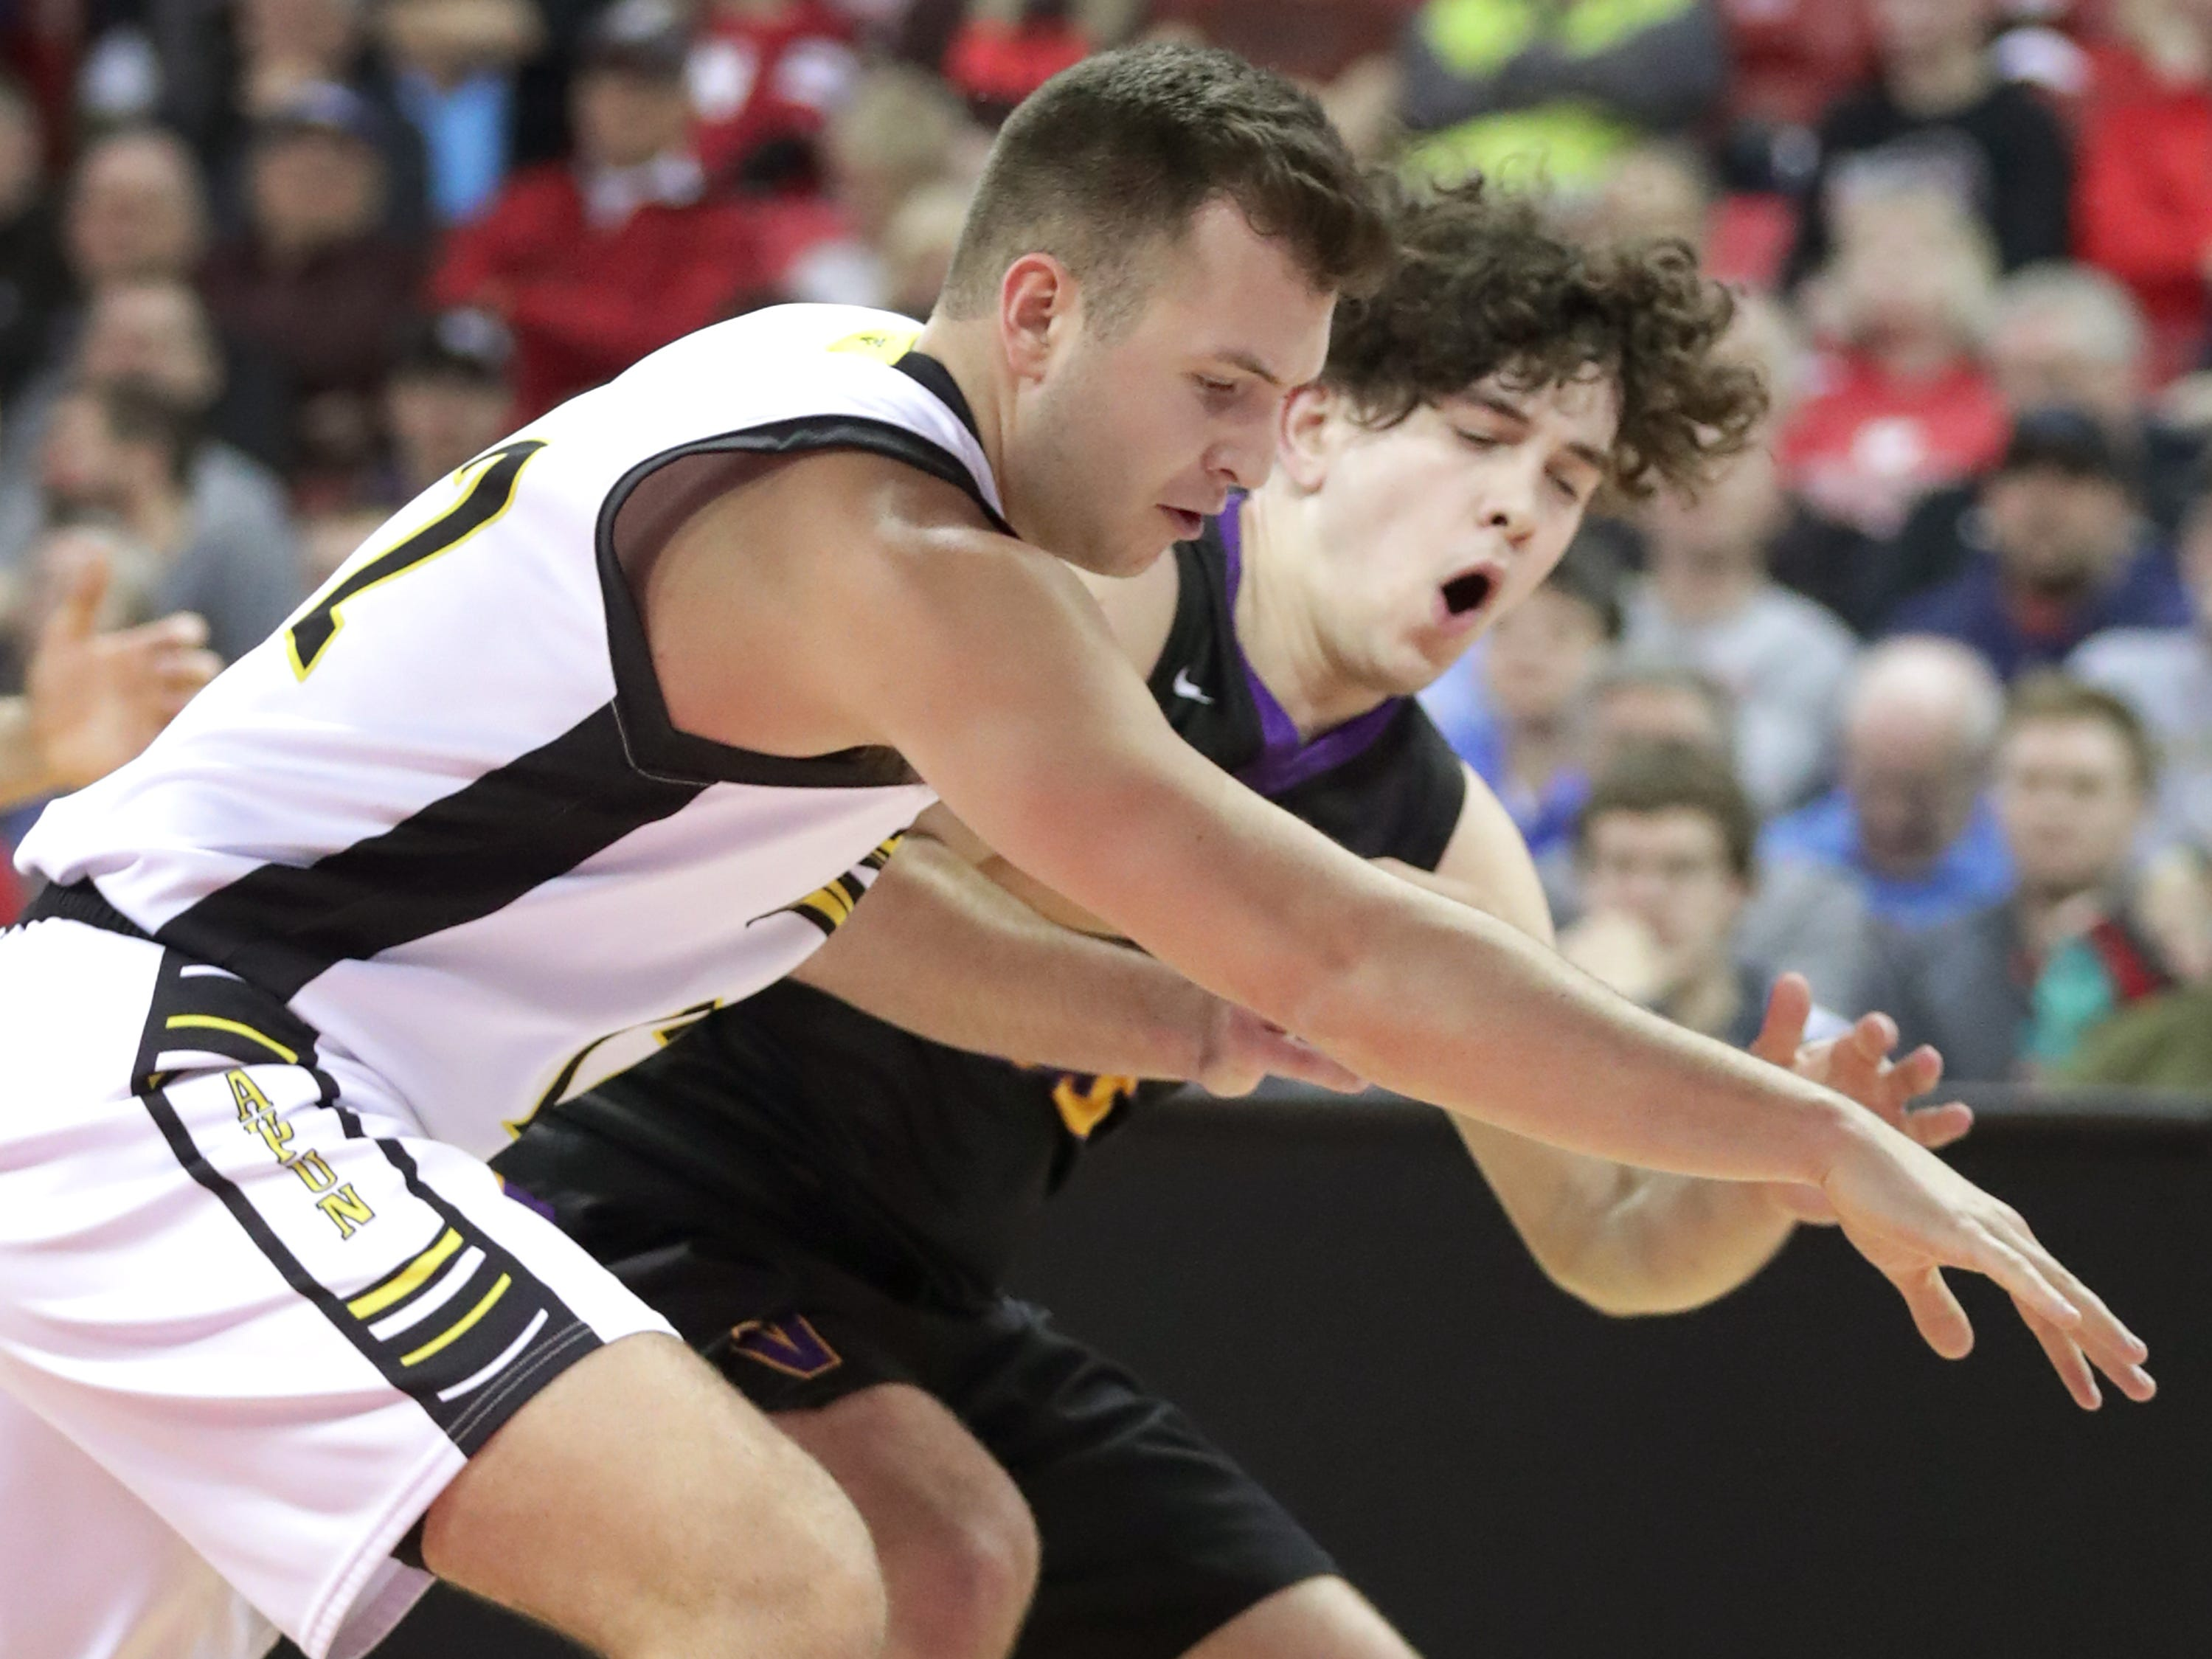 Denmark High School's #23 Brady Jens, back, against Waupun High School 's #22 Jaden Collien during their WIAA Division 3 boys basketball state semifinal on Thursday, March 14, 2019, at the KohlCenter in Madison, Wis.  Waupun defeated Denmark 60 to 43.